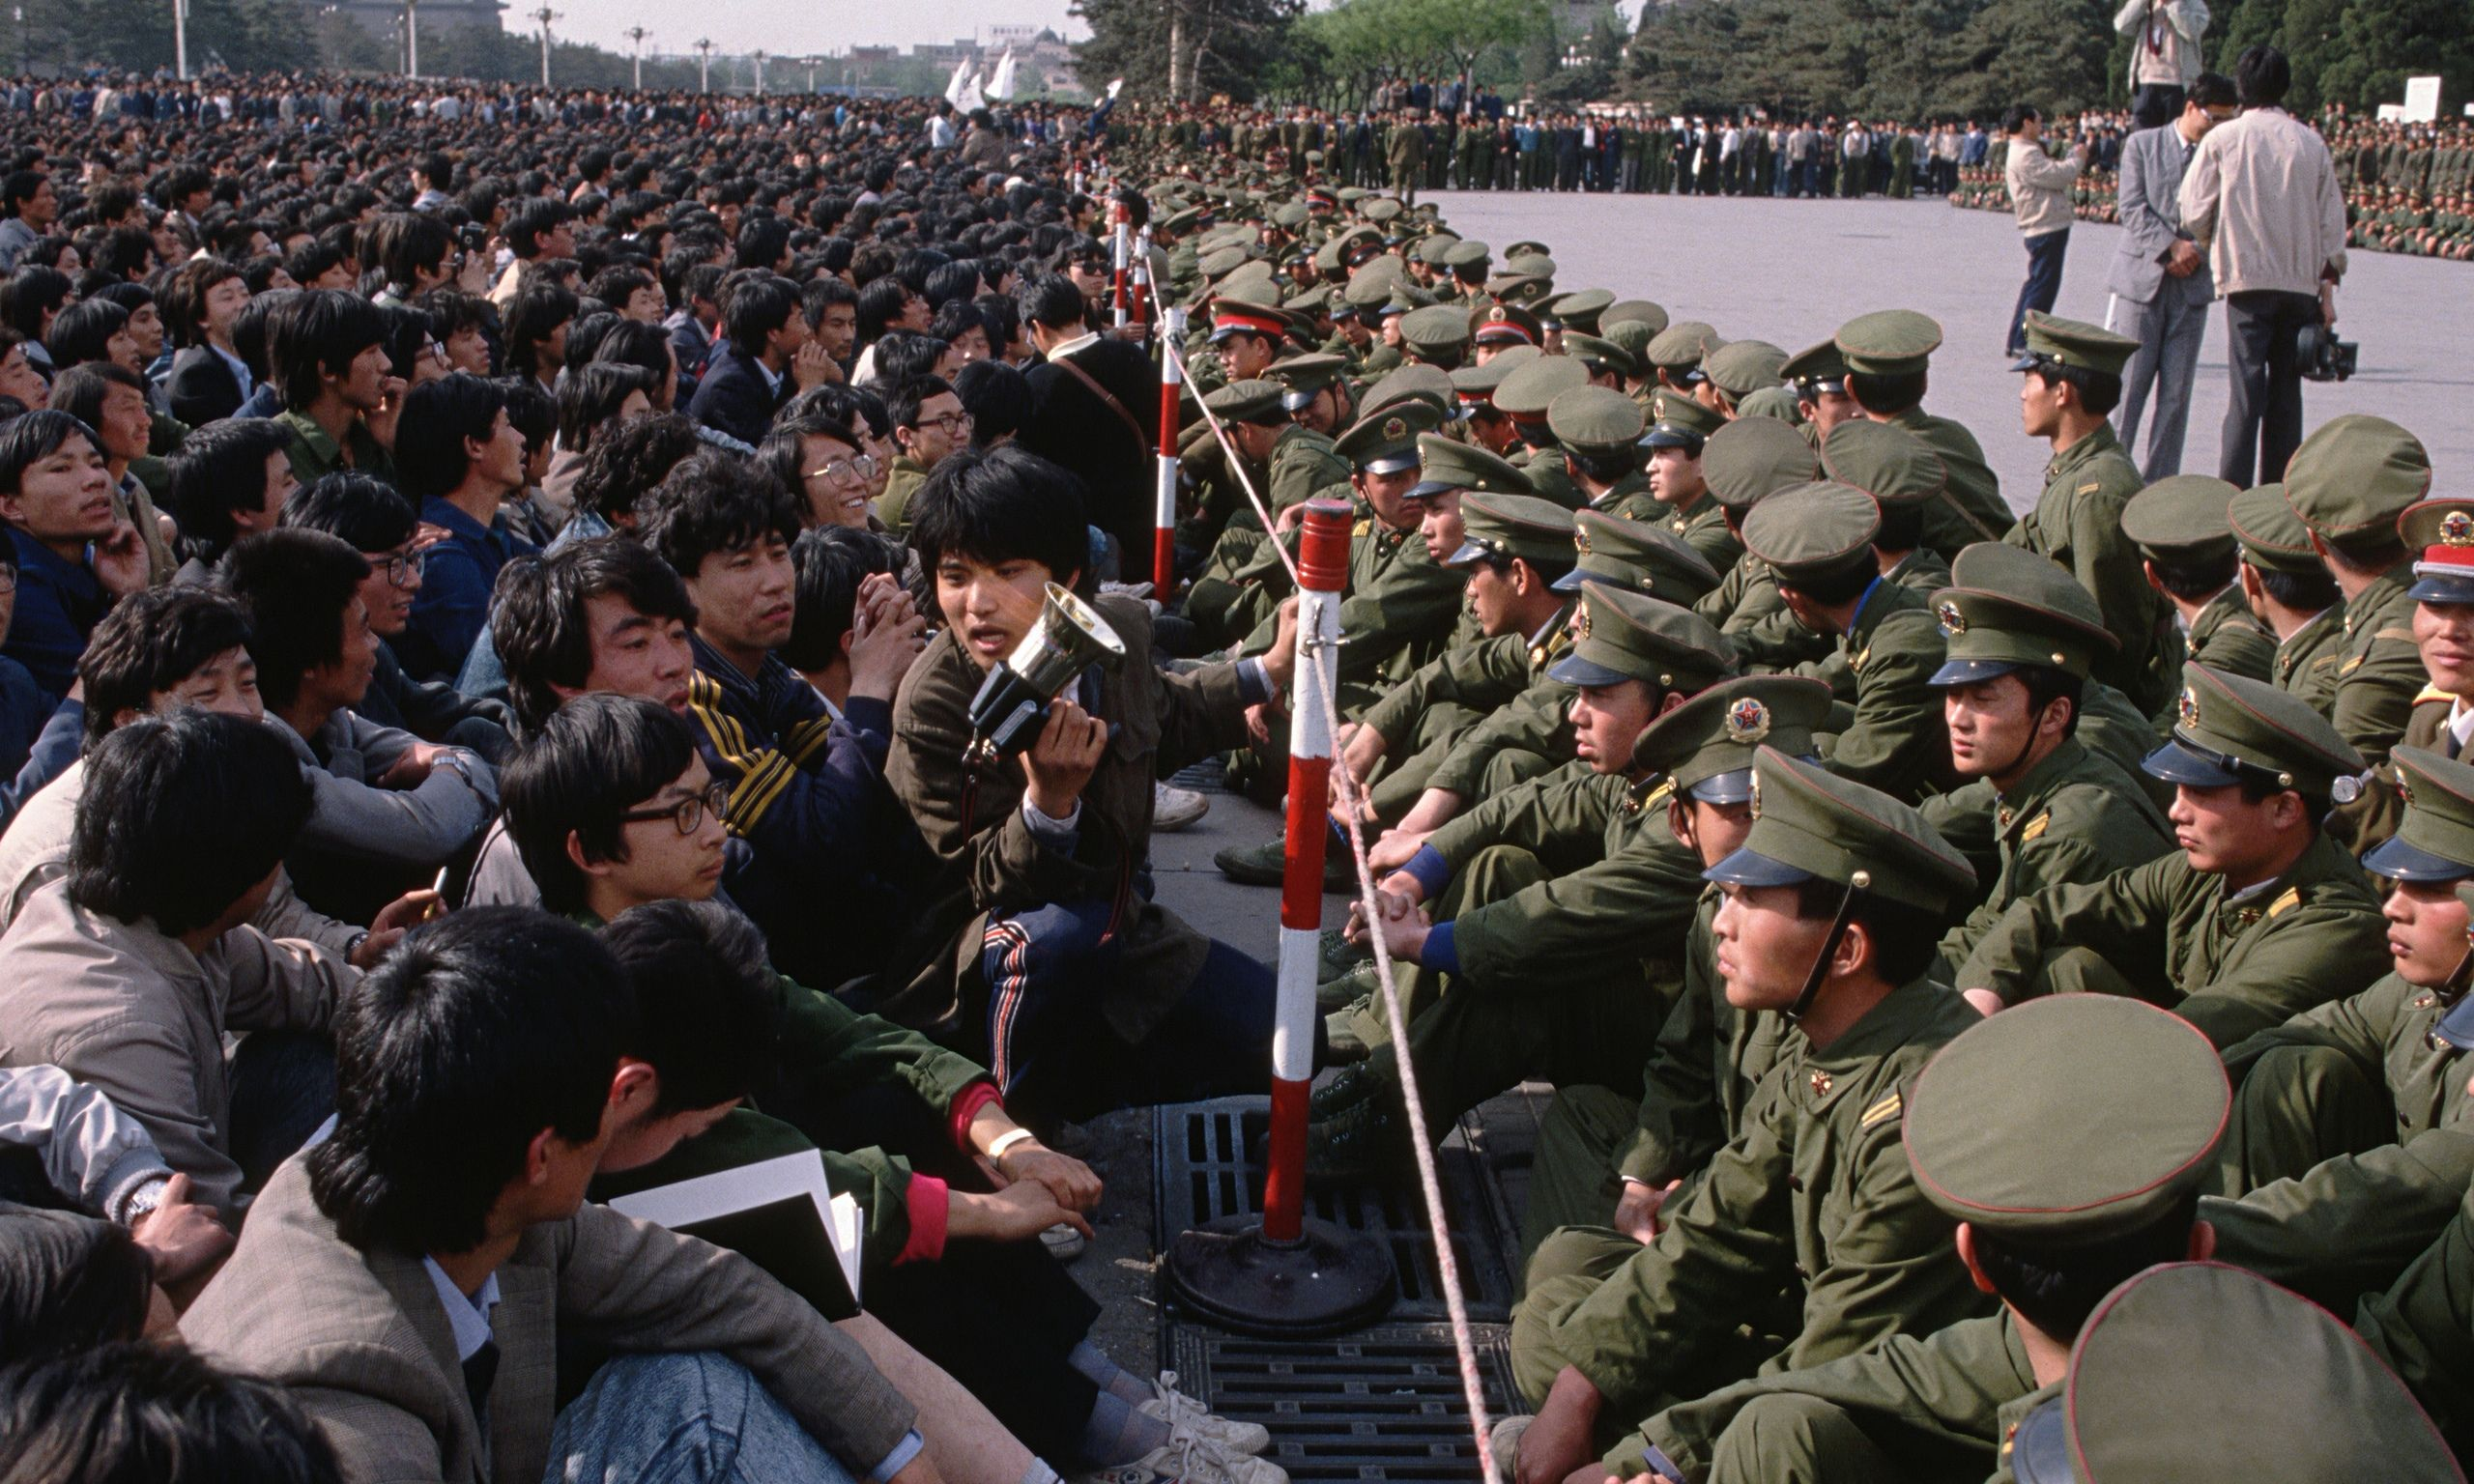 Tiananmen Square Protests And Crackdown 25 Years On Today In